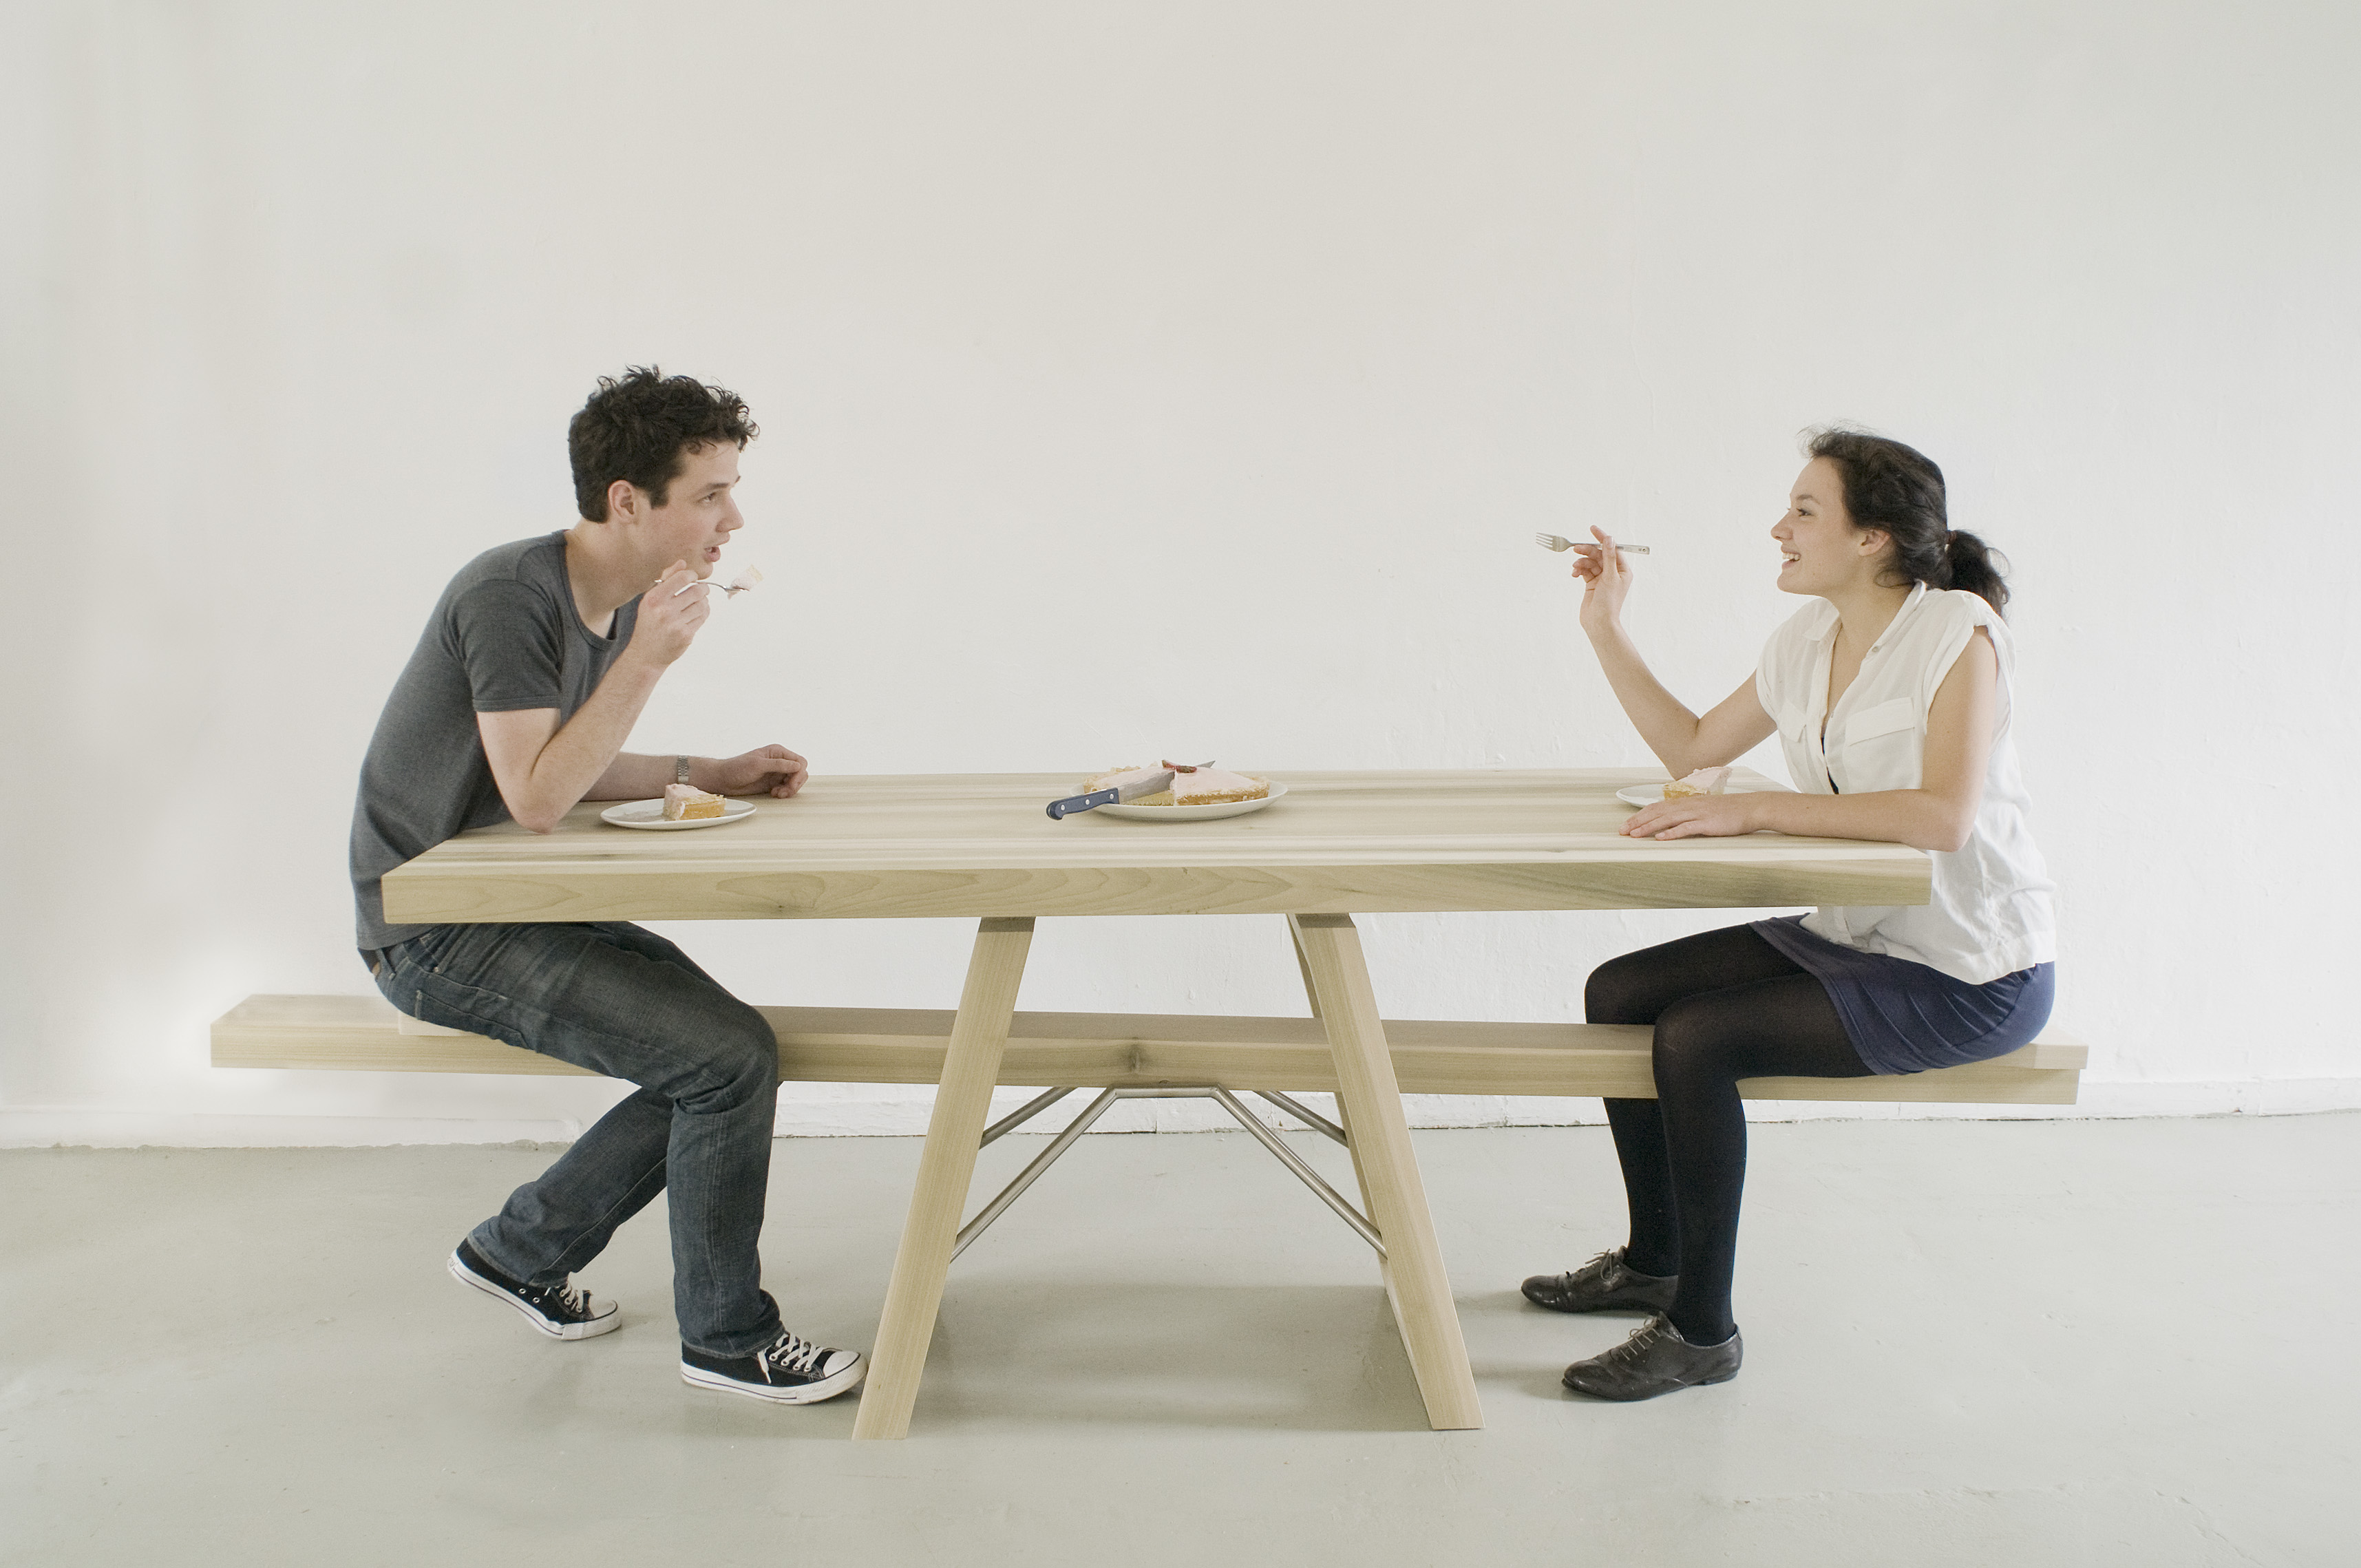 Courtesytable a wooden picnic style table with novel for 10 person picnic table